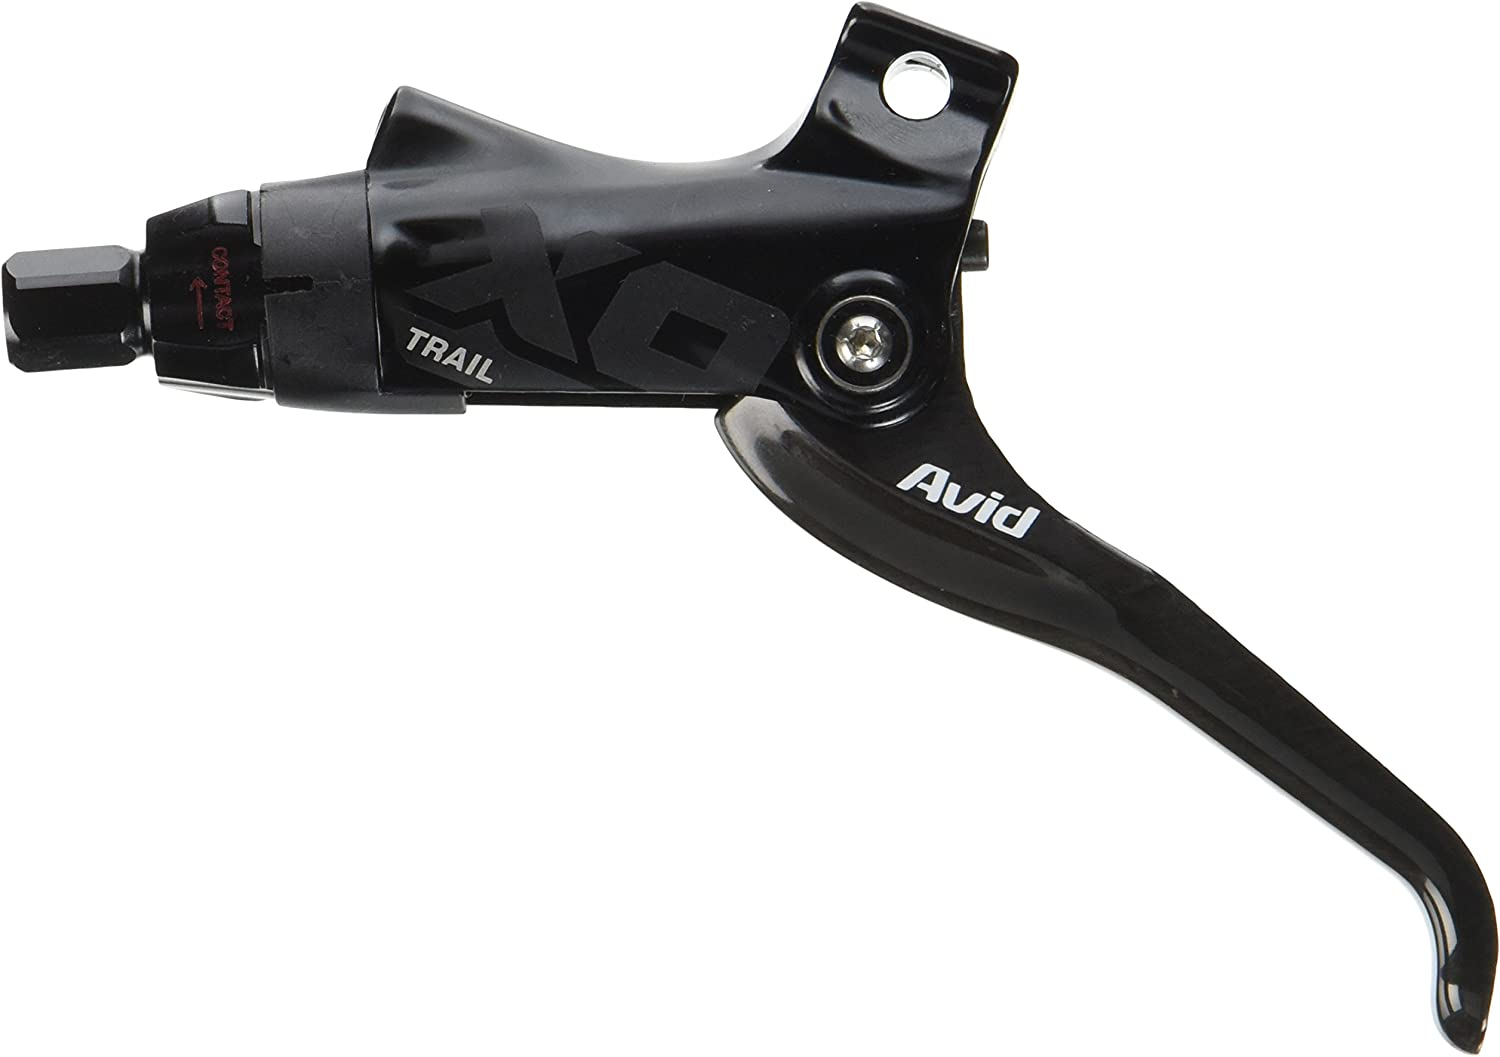 Image of Avid Lever Assy X0 Trail GS 2013 w/Carbon Lever (Tooled Reach Adj) Black/Black (Hinged Clamp/MMX Compatible) Brakes Disc Hydralic Greys Brake Levers